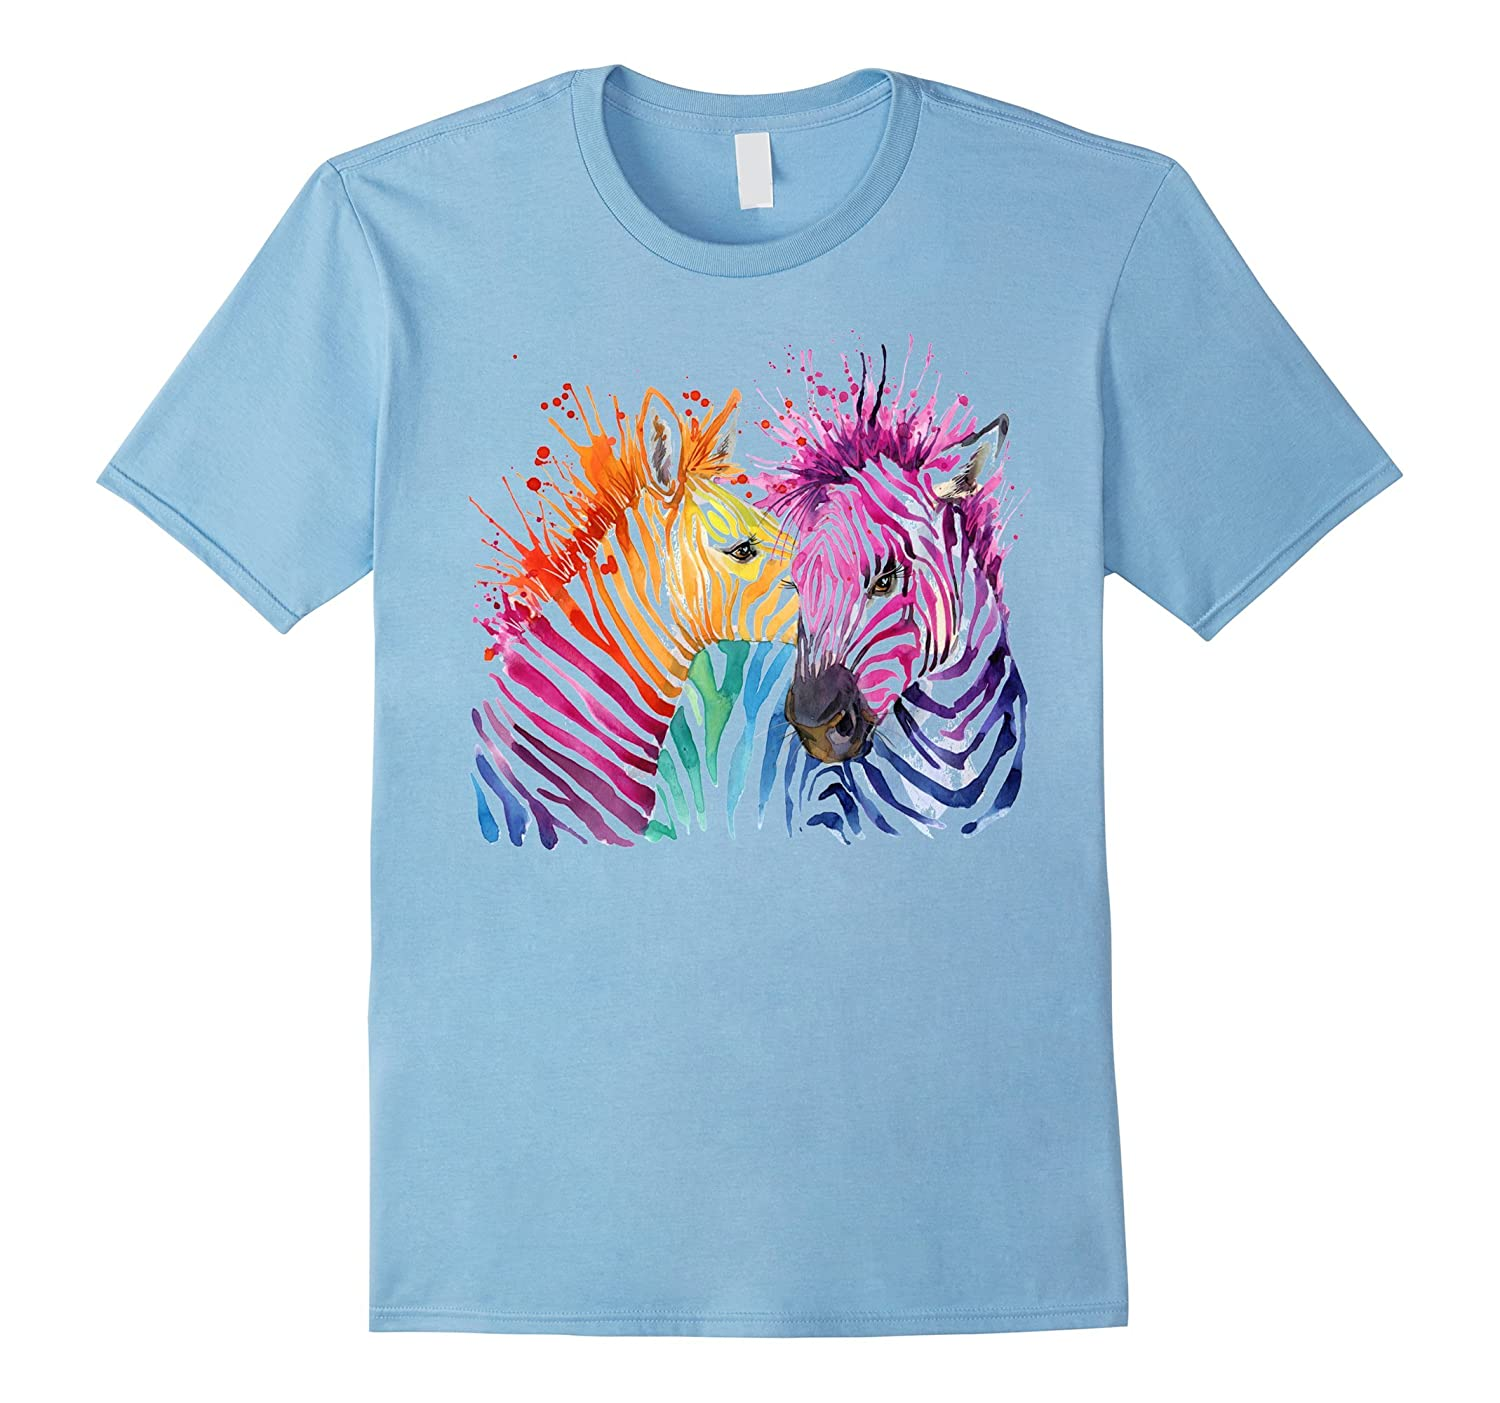 Cute watercolor neon color zebra couple tees shirts anz for Neon colored t shirts wholesale